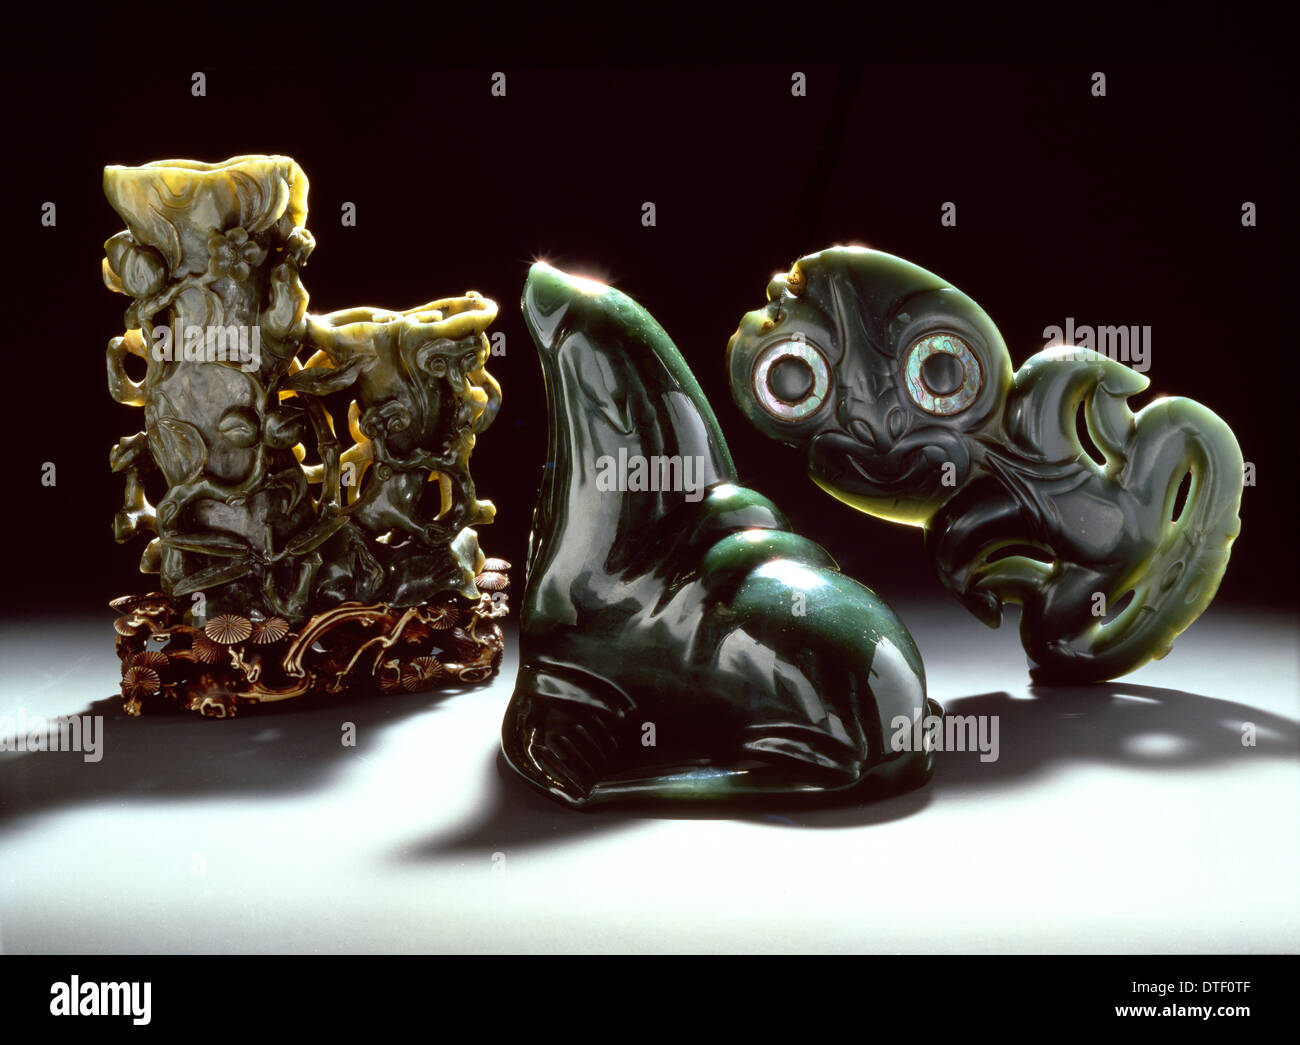 Objects carved from nephrite jade - Stock Image